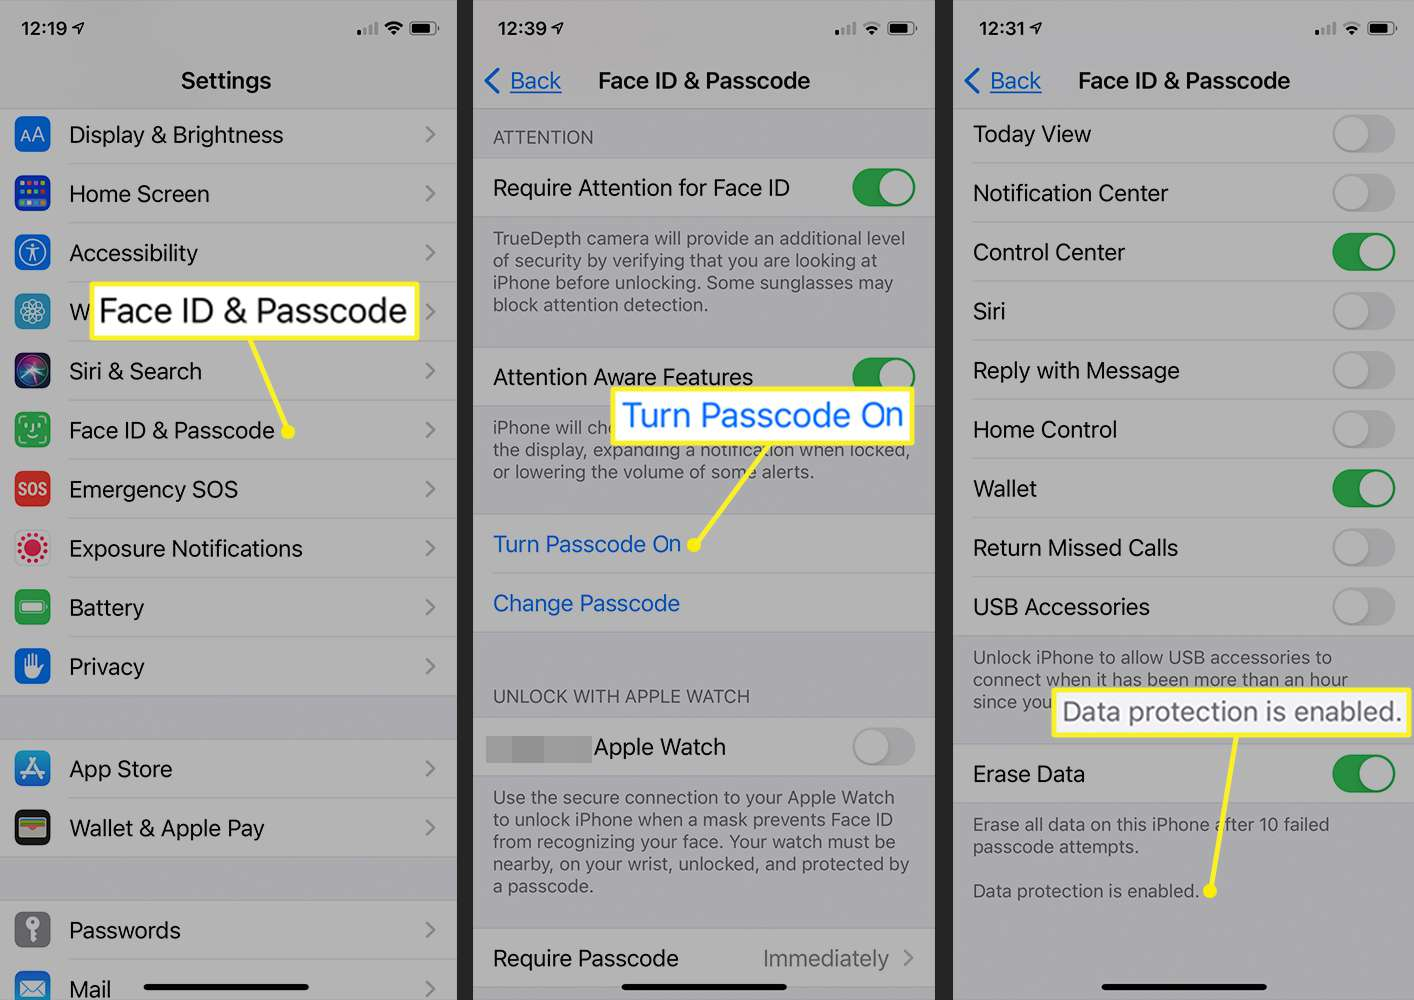 iPhone path to turn passcode on and enable data protection